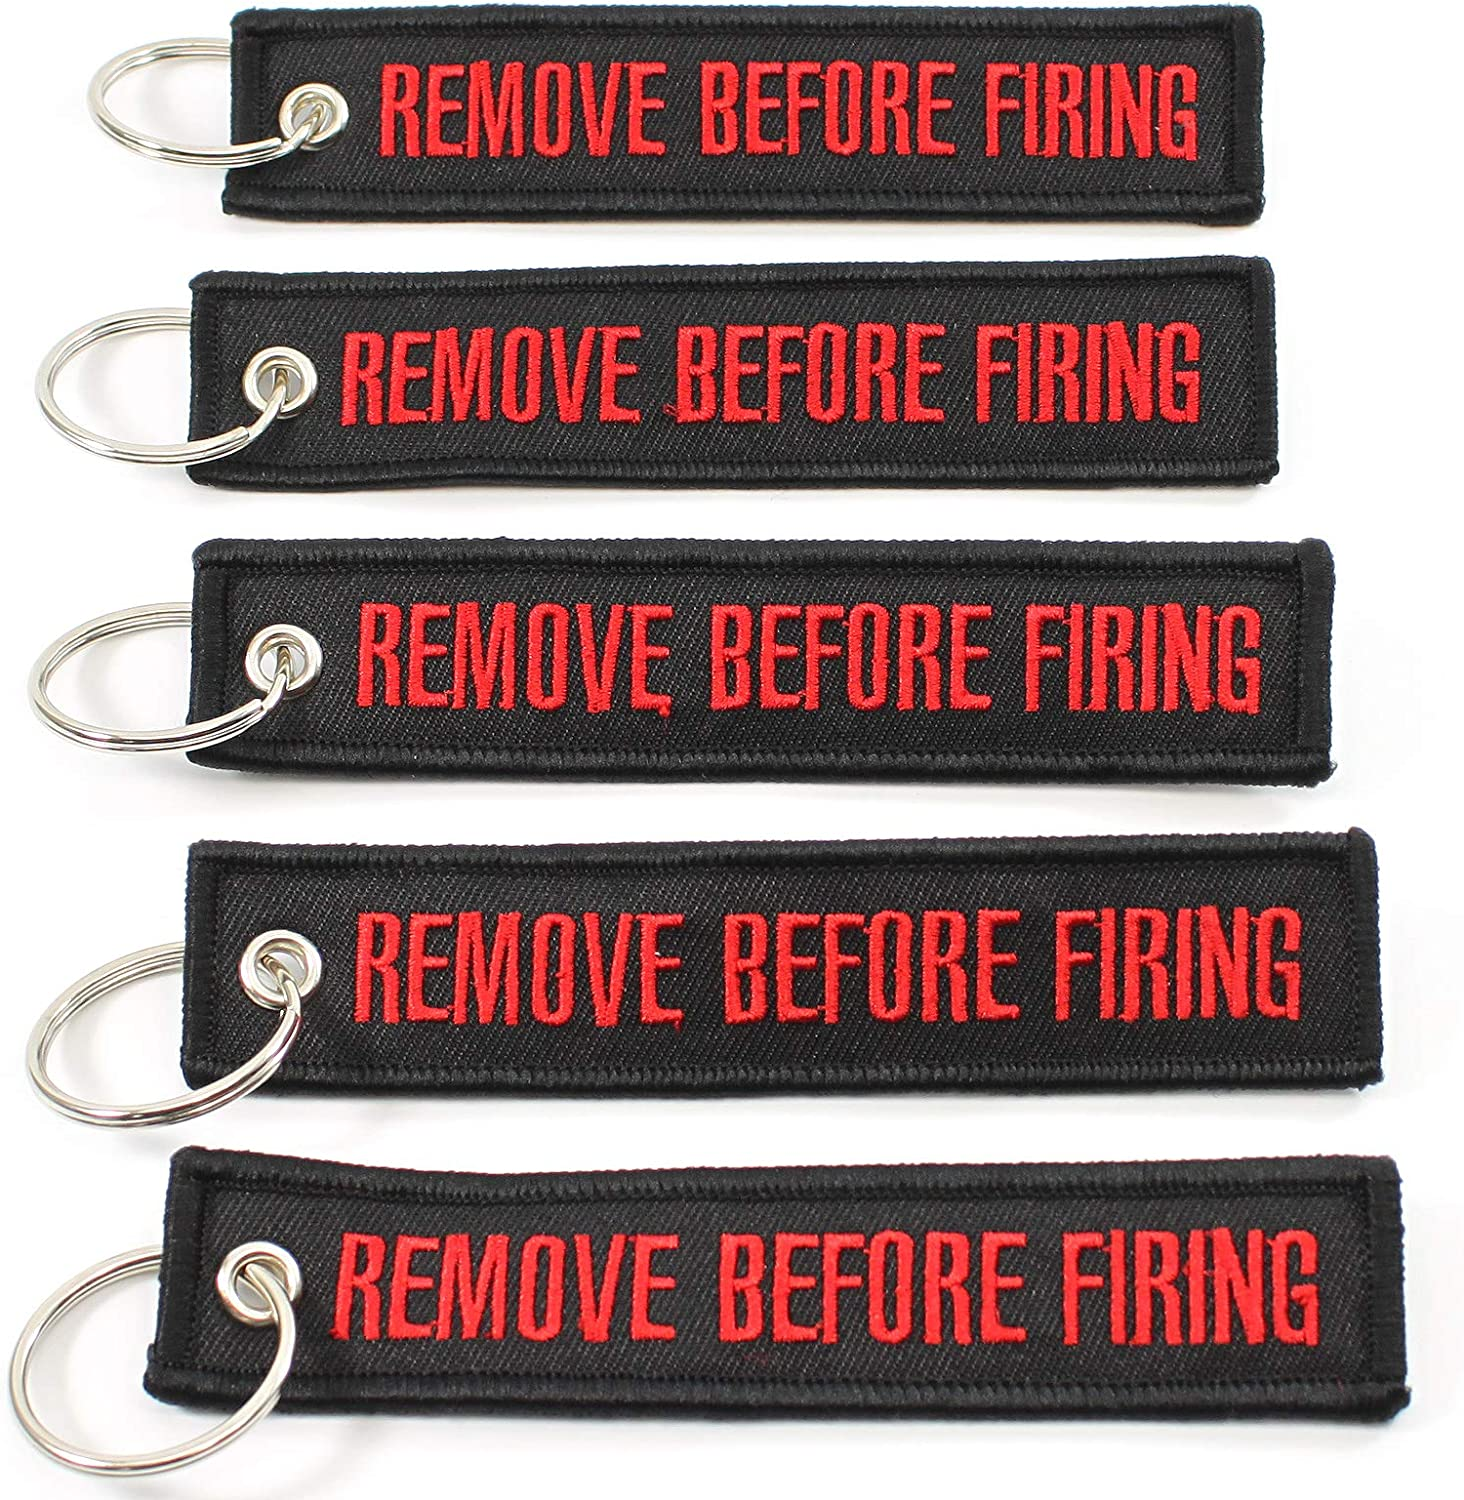 Rotary13B1 Remove Before Firing Key Chains Multi Color 5pcs Sale!